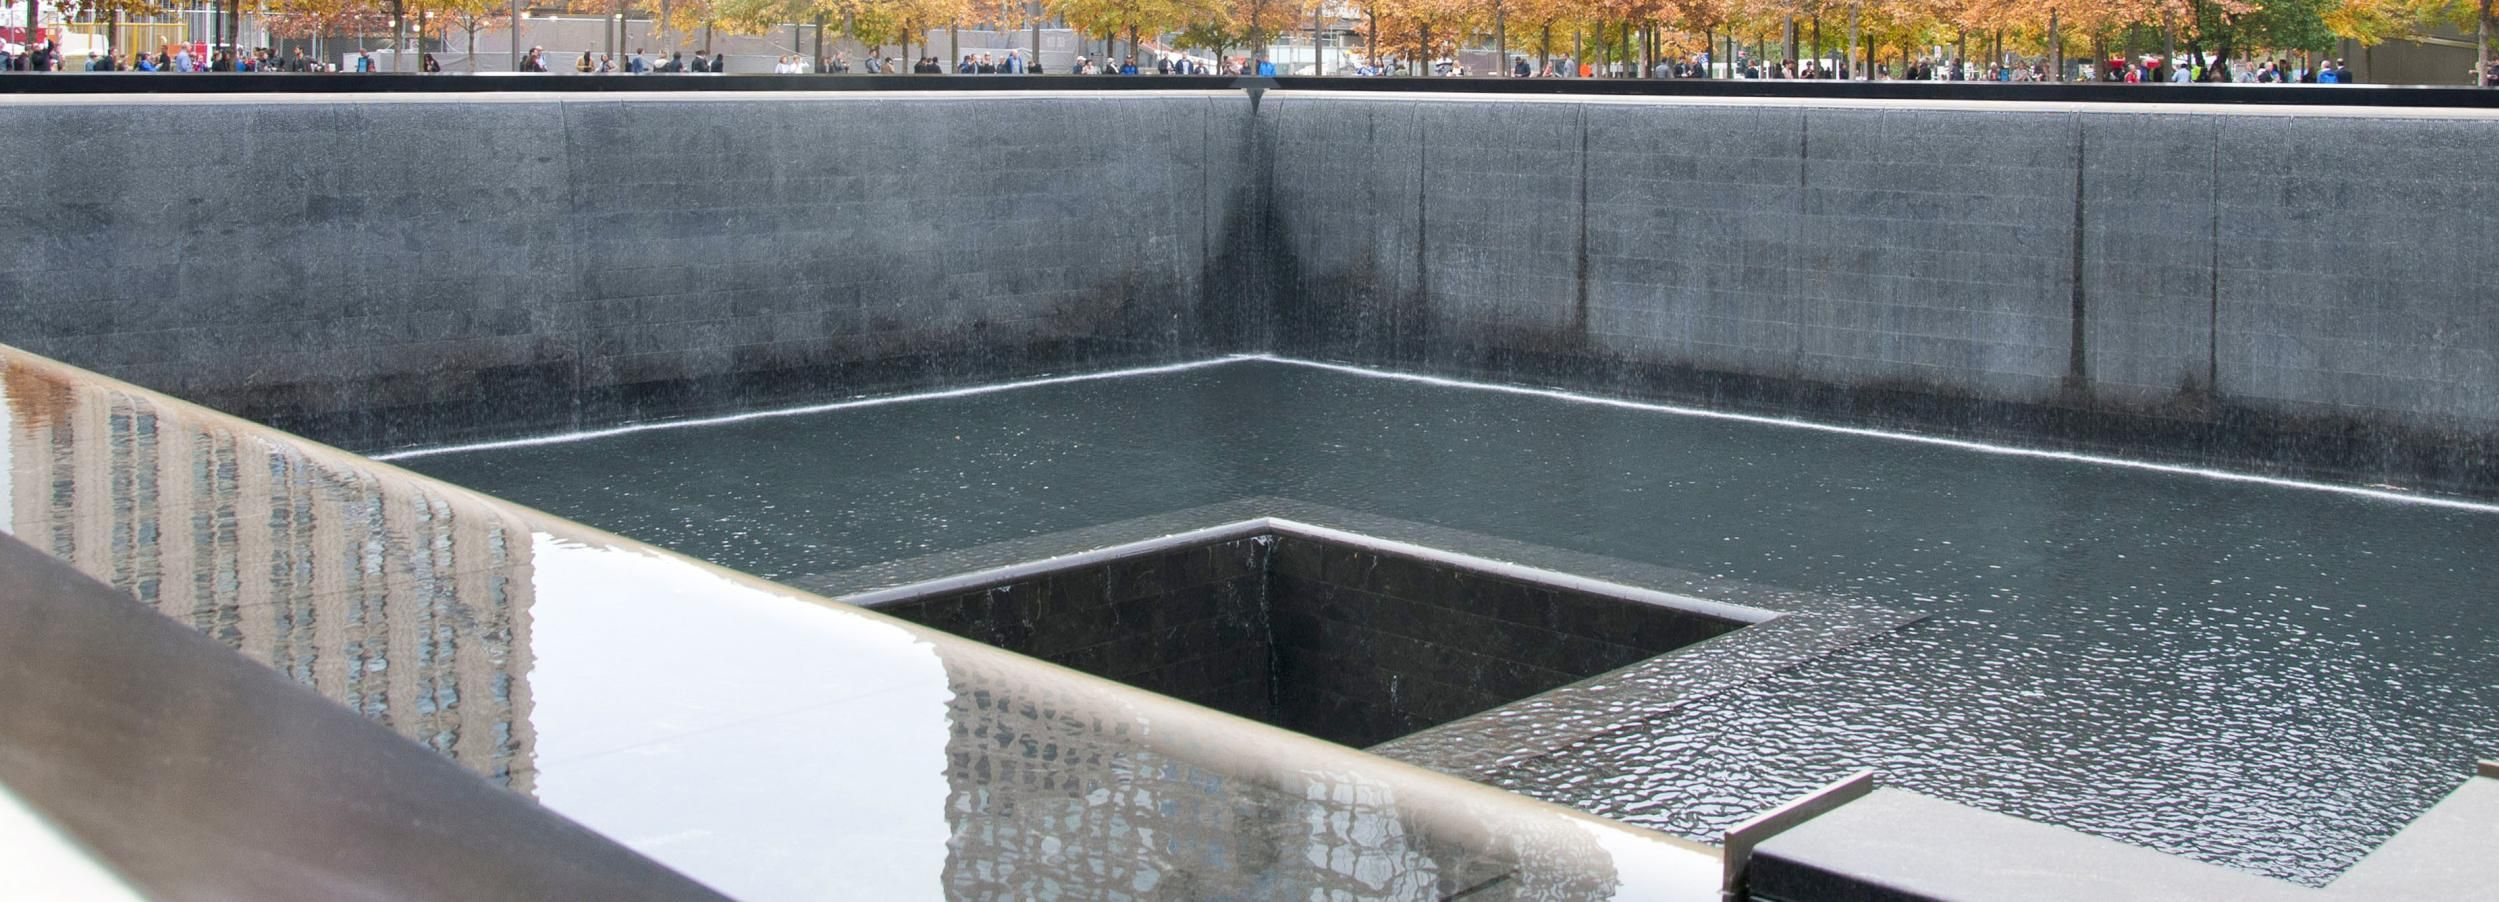 9/11 Tour & All Access: 9/11 Memorial, Museum & Observatory